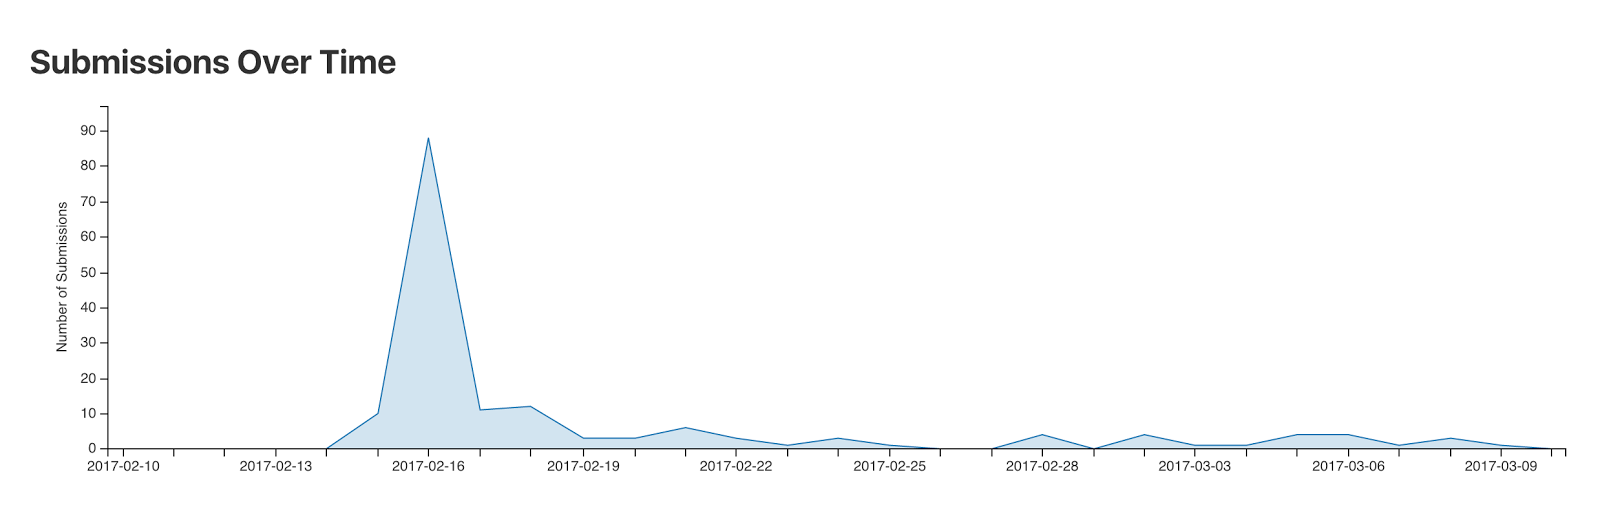 Submissions over time